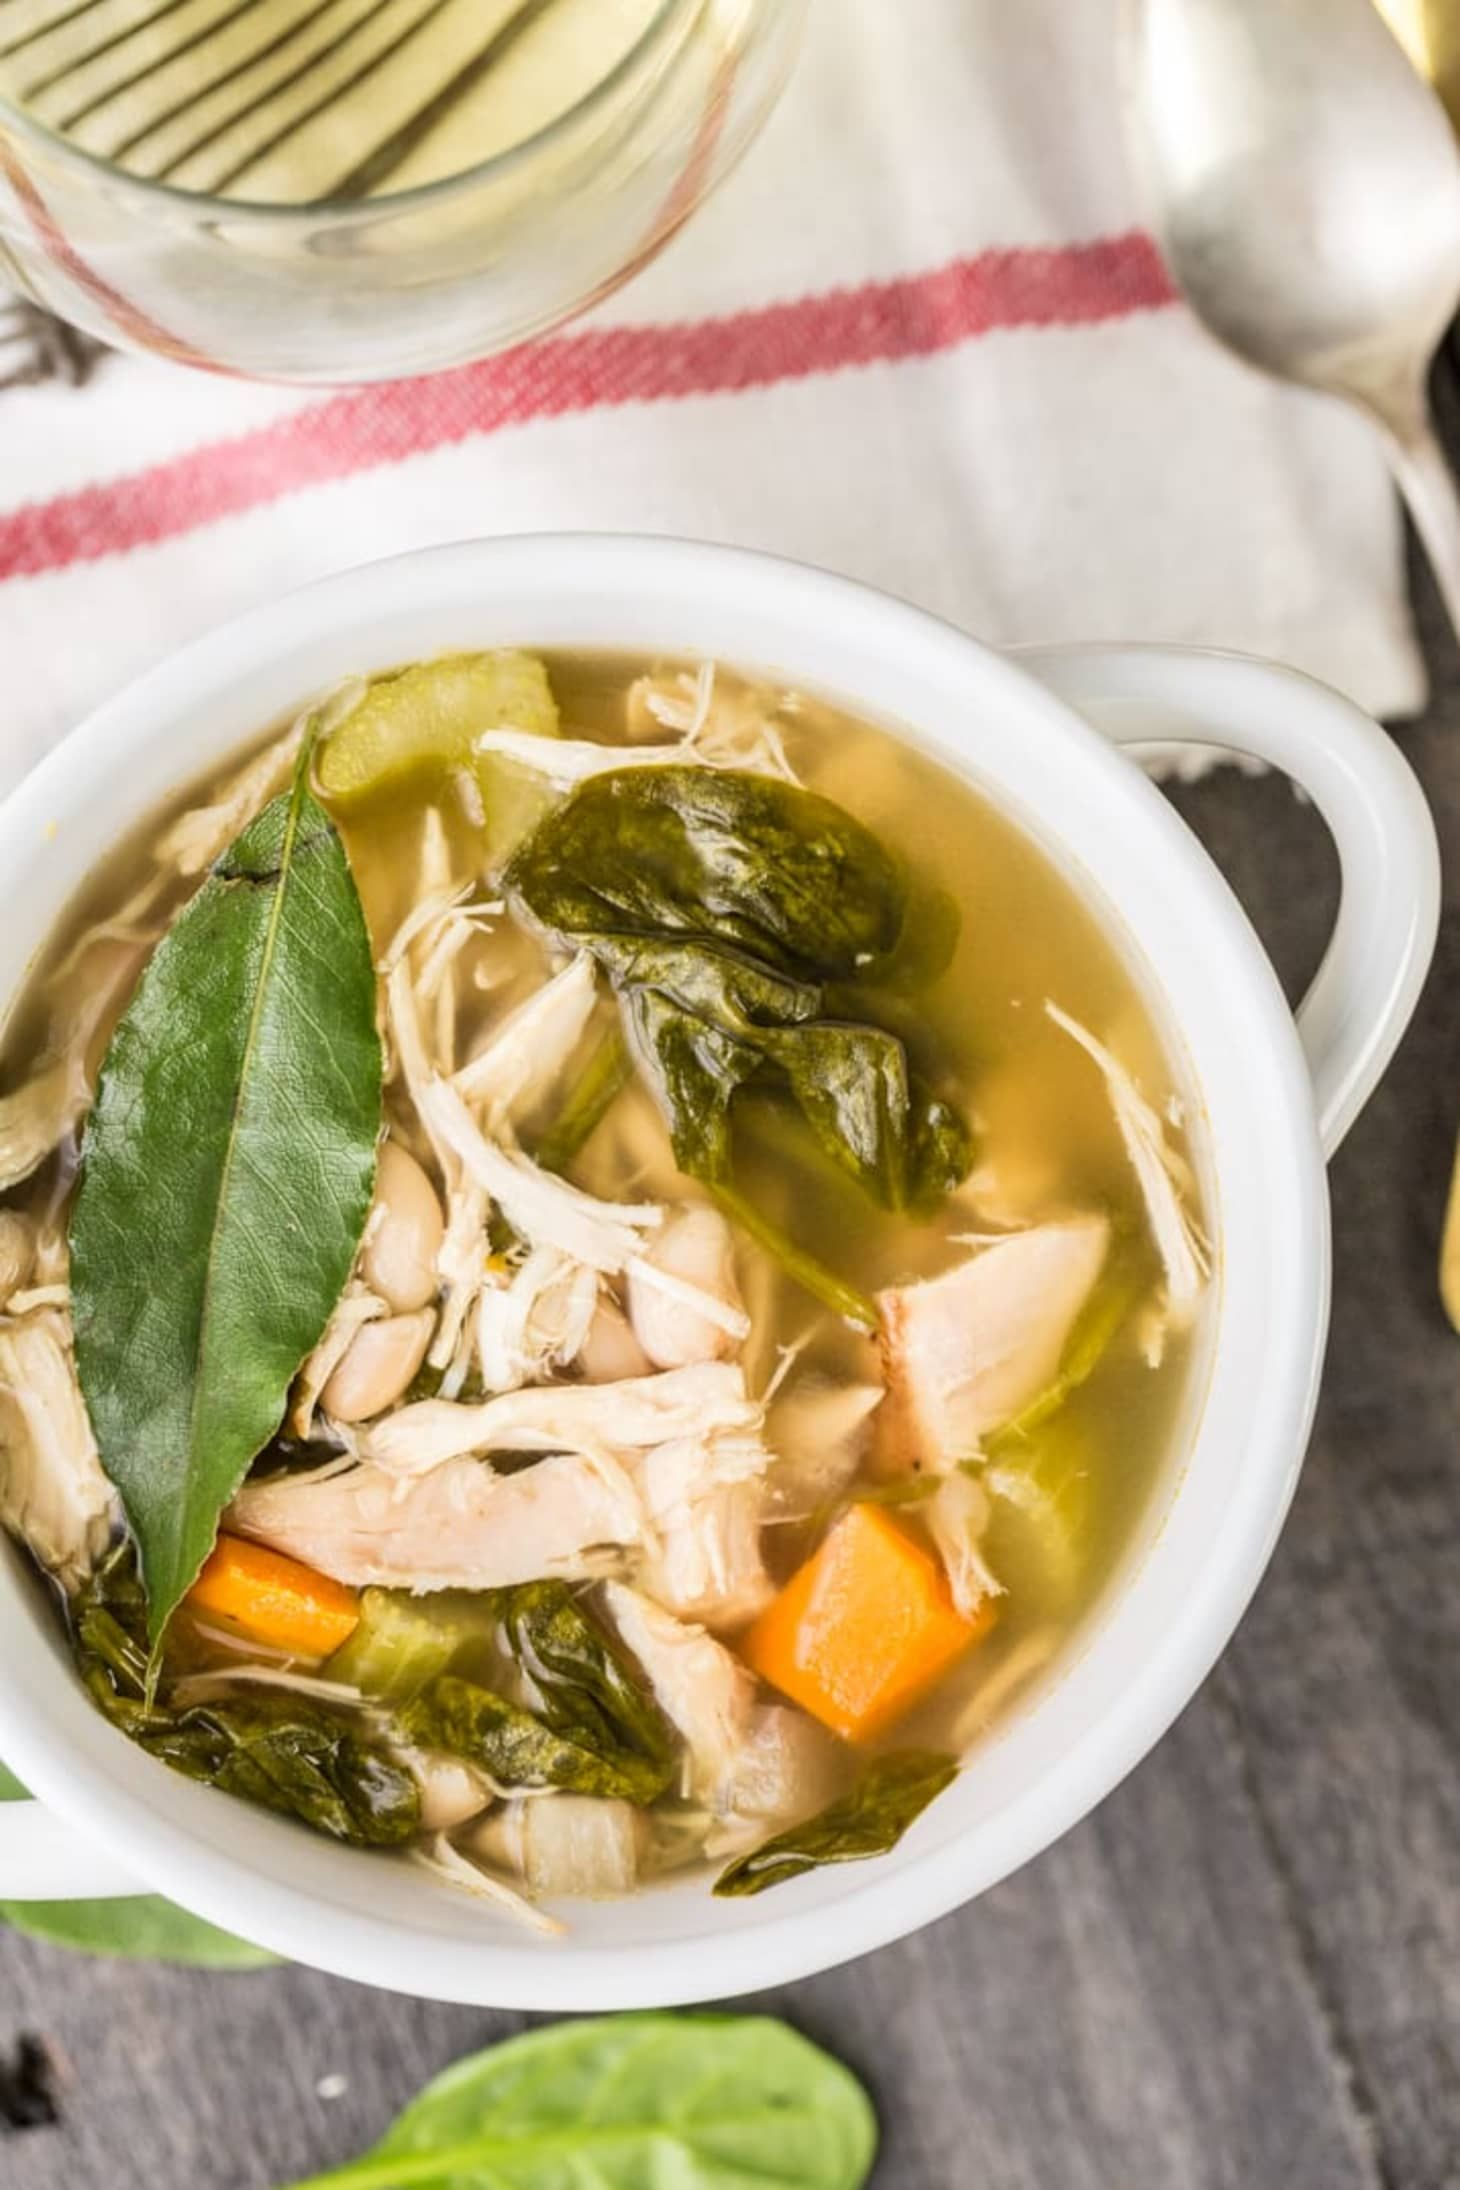 10 Absurdly Delicious Mediterranean Diet Recipes You Can Make in Your Slow Cooker